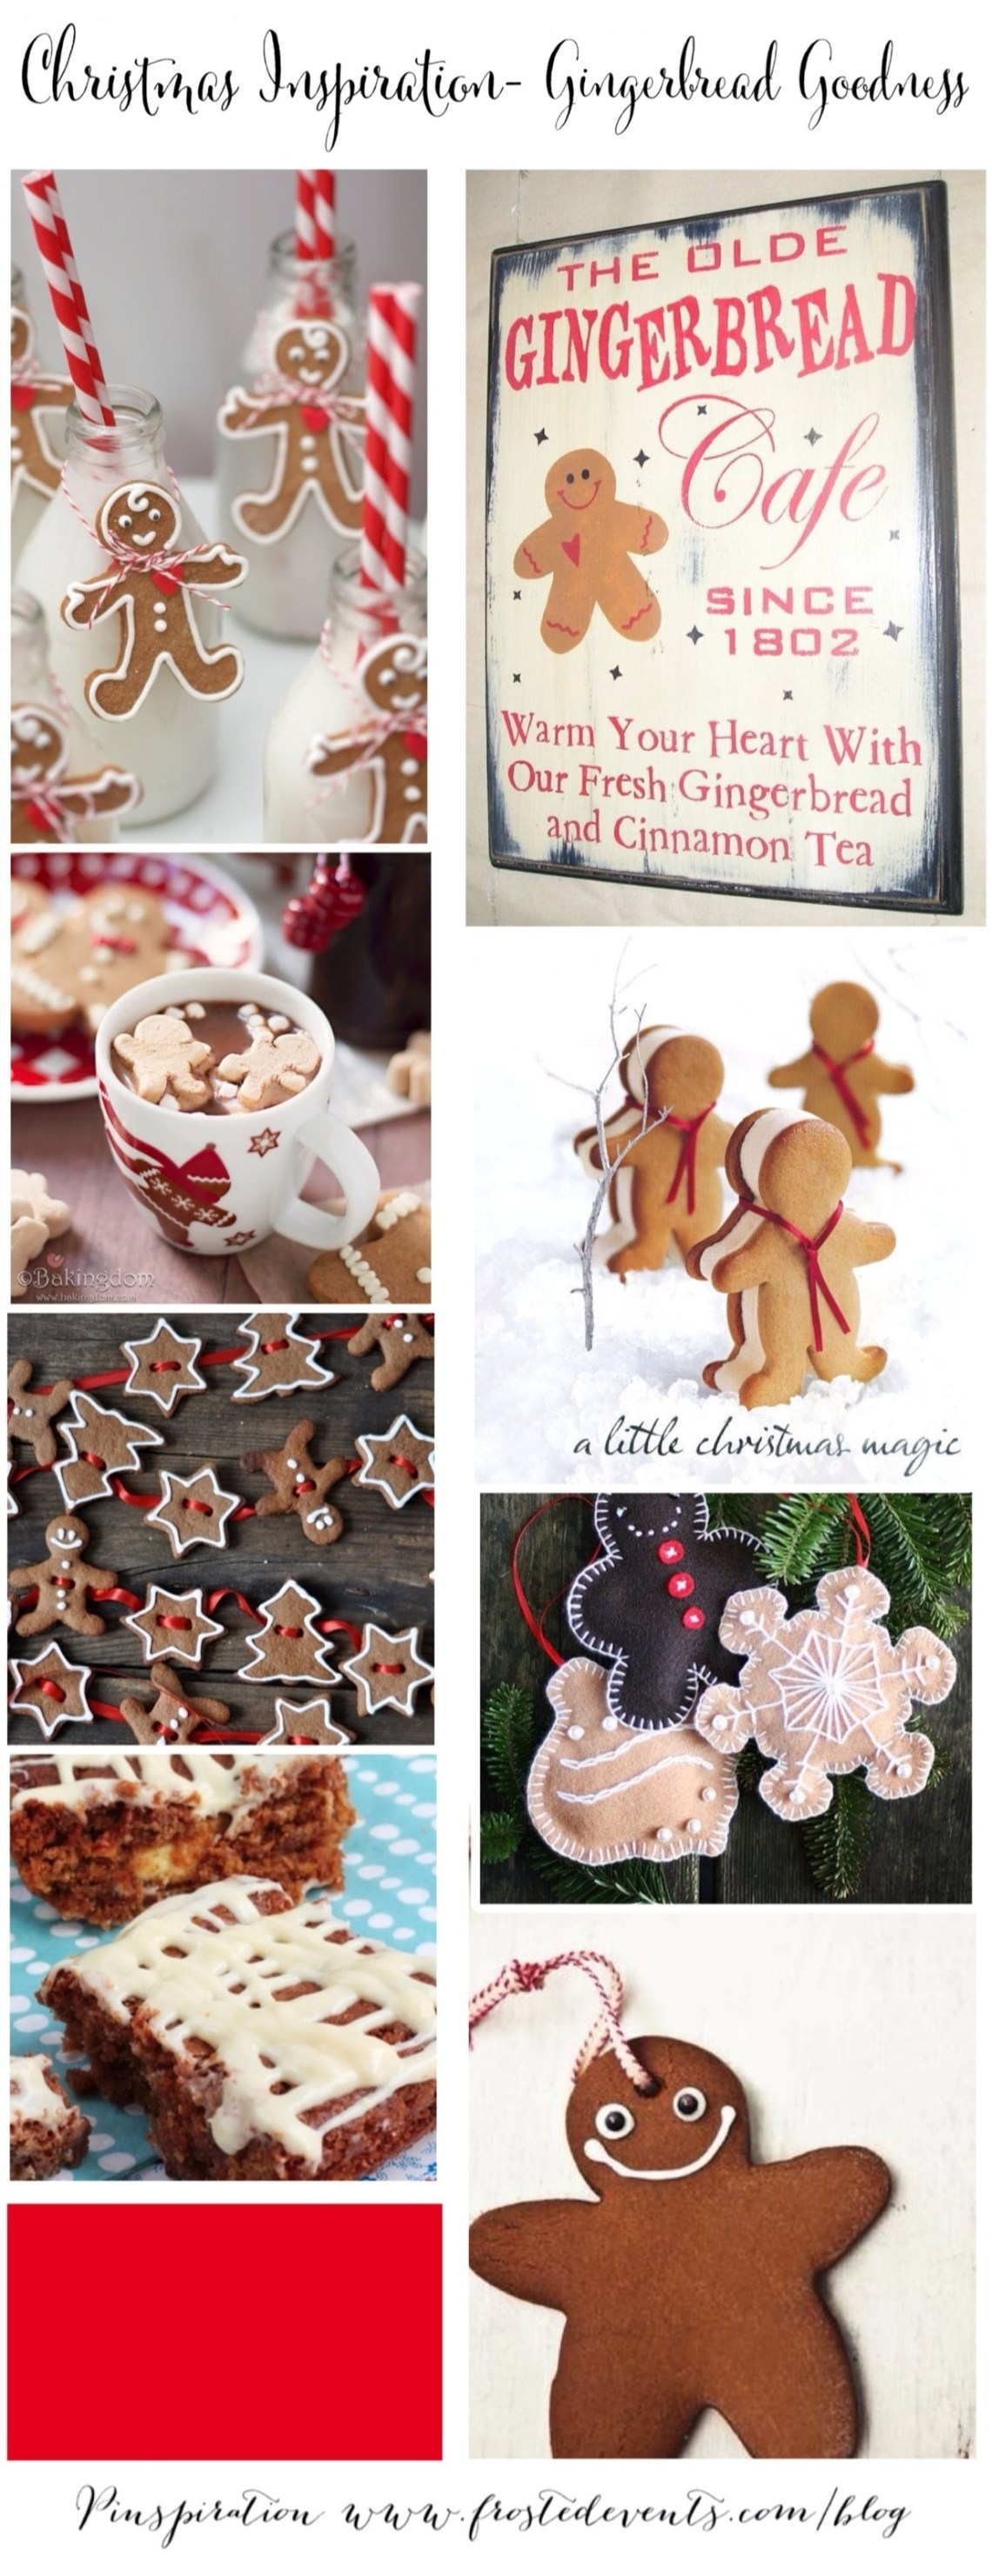 Christmas Inspiration- Gingerbread Goodness www.frostedevents.com